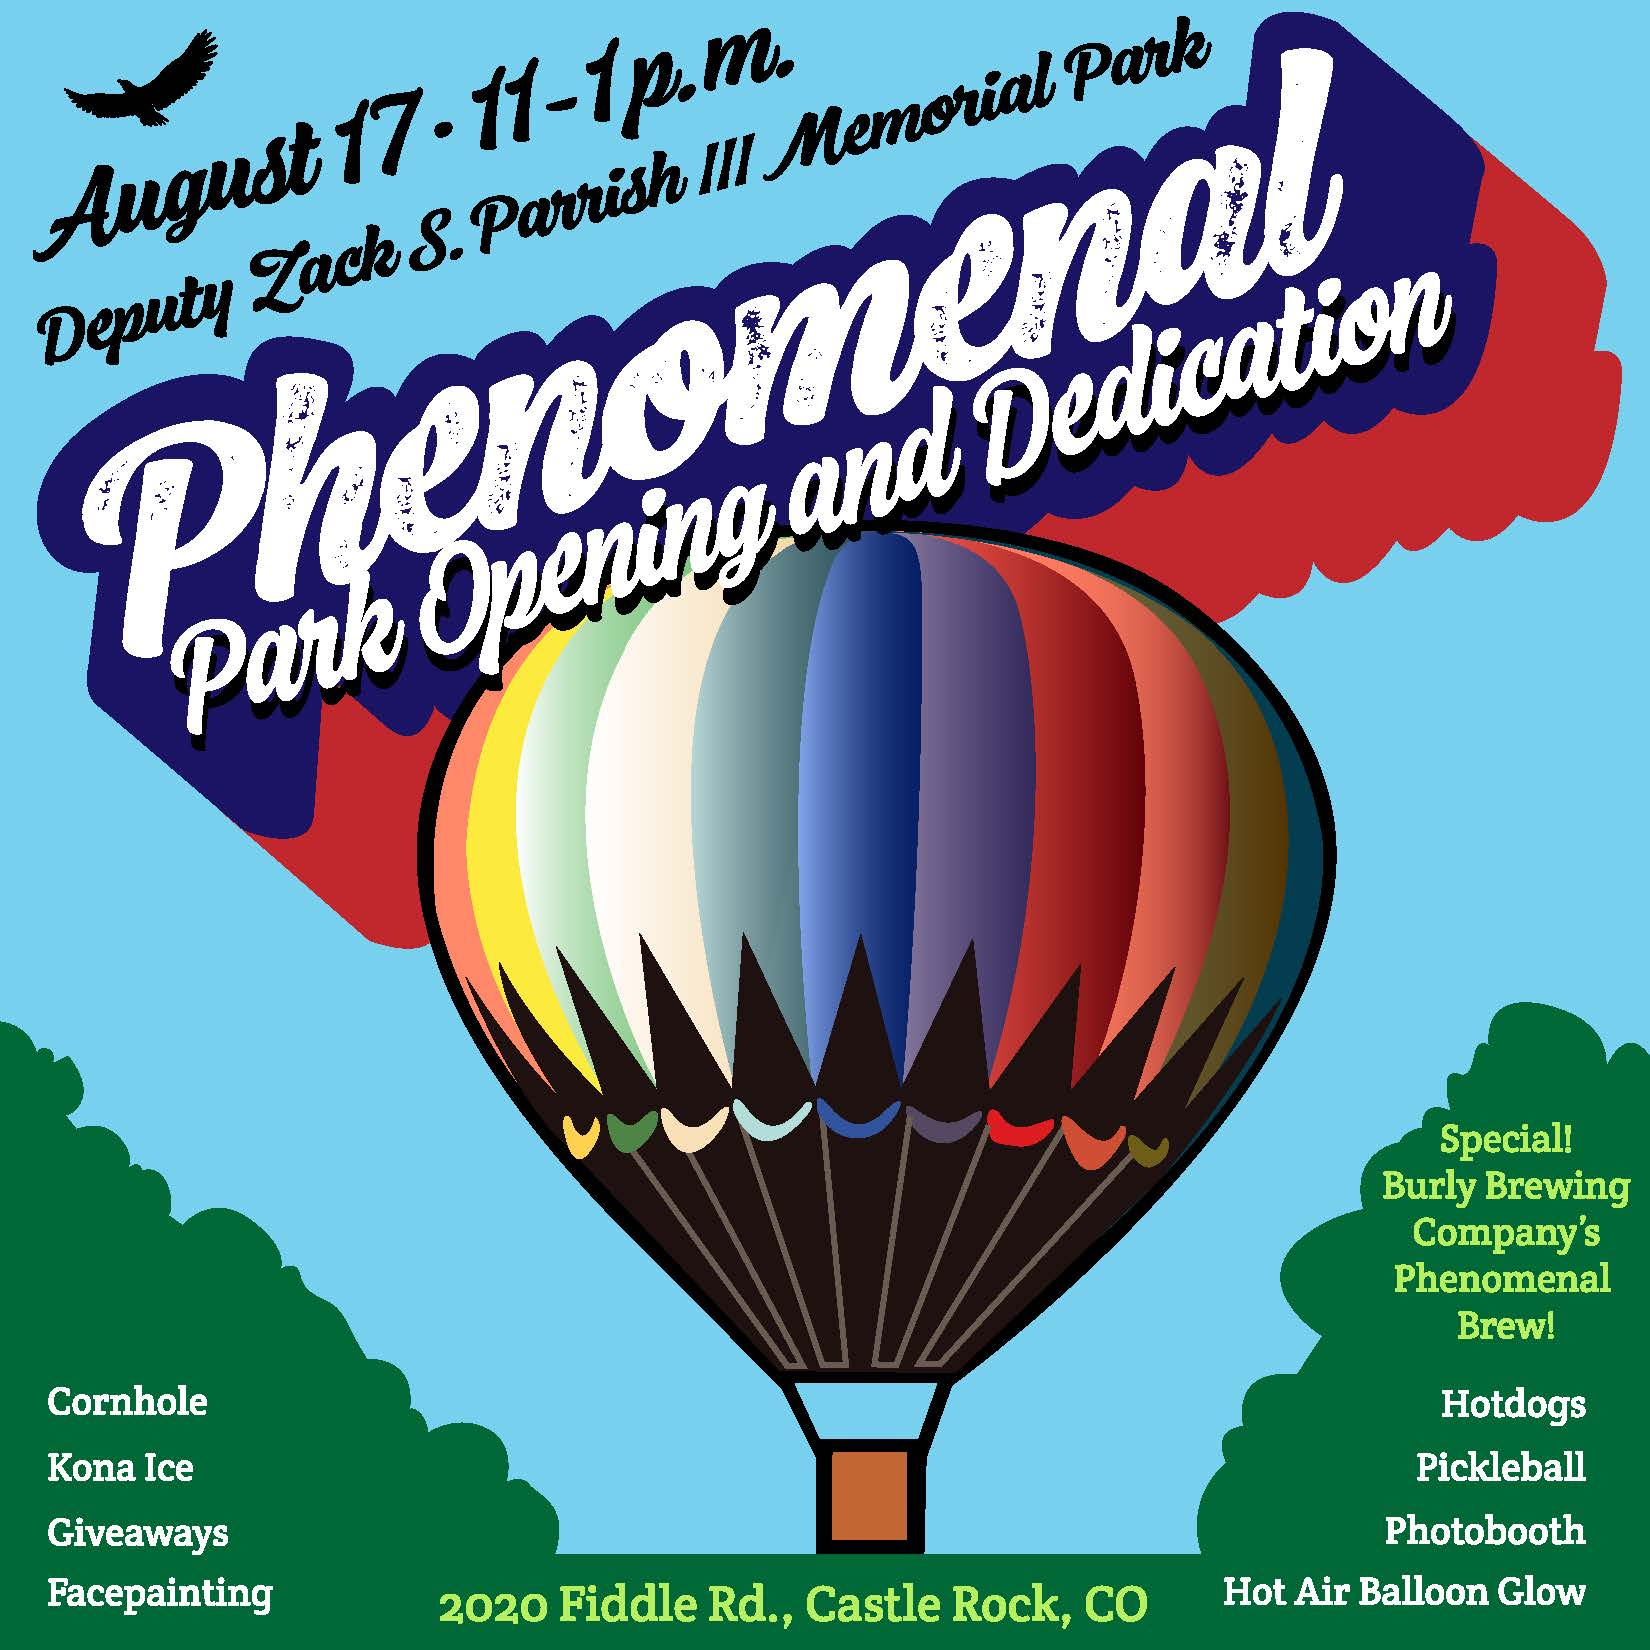 Parrish Park Phenomenal Park Opening and Dedication, 11 a.m.-1 p.m. Saturday, Aug. 17